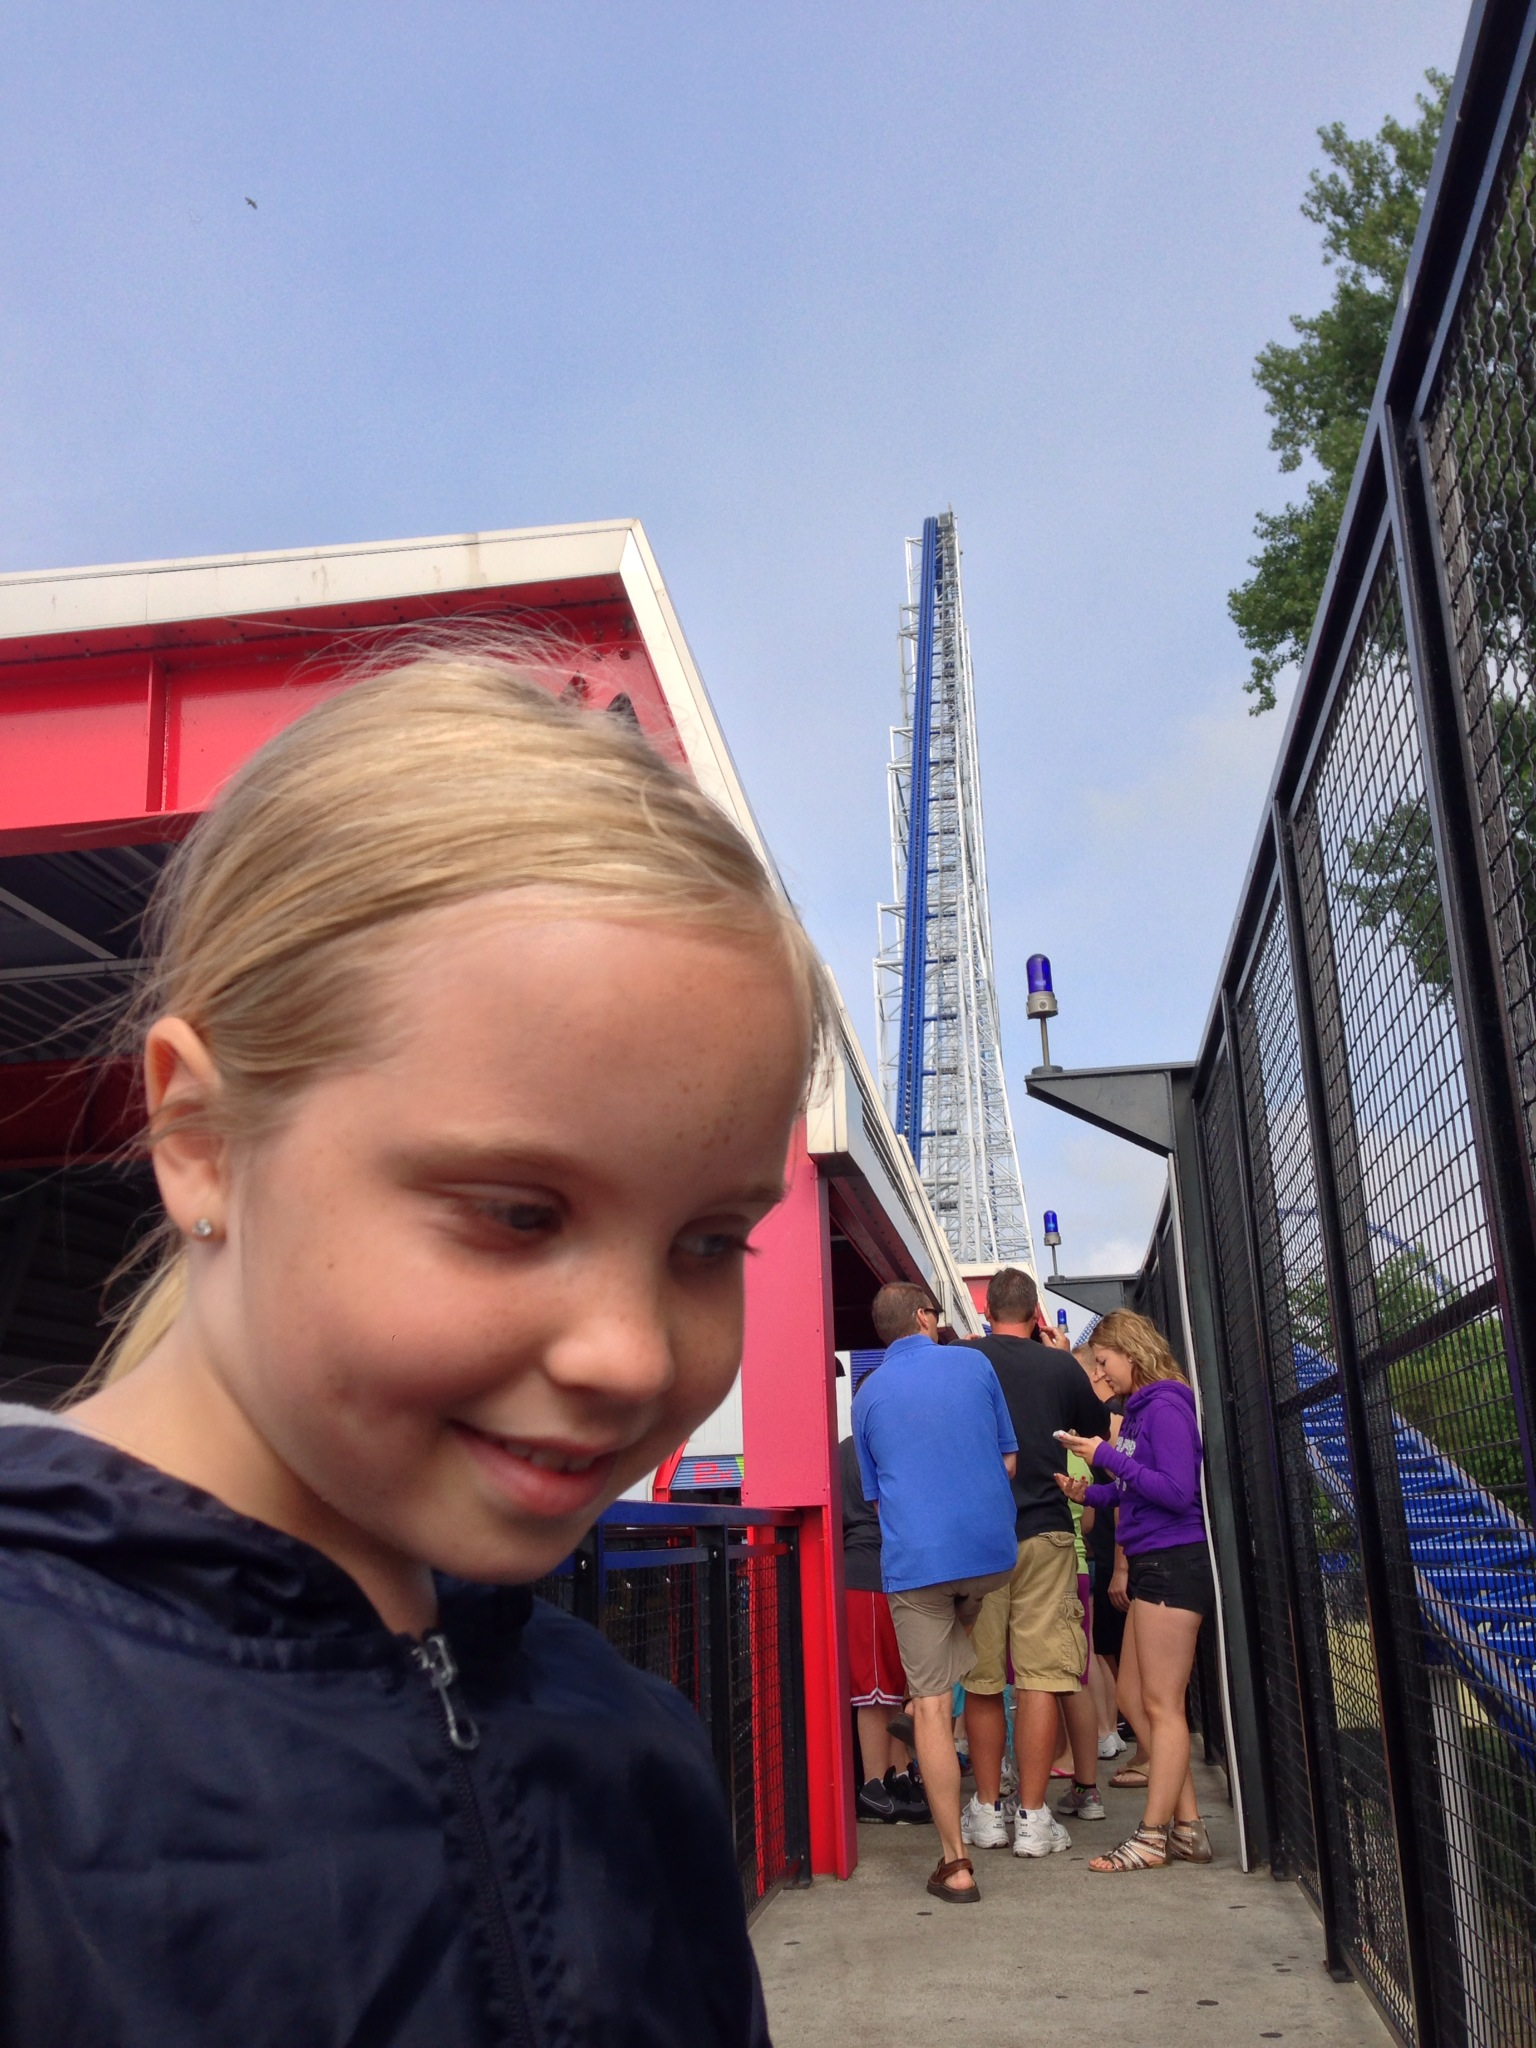 Trinity waiting in line for the Millenium Force.